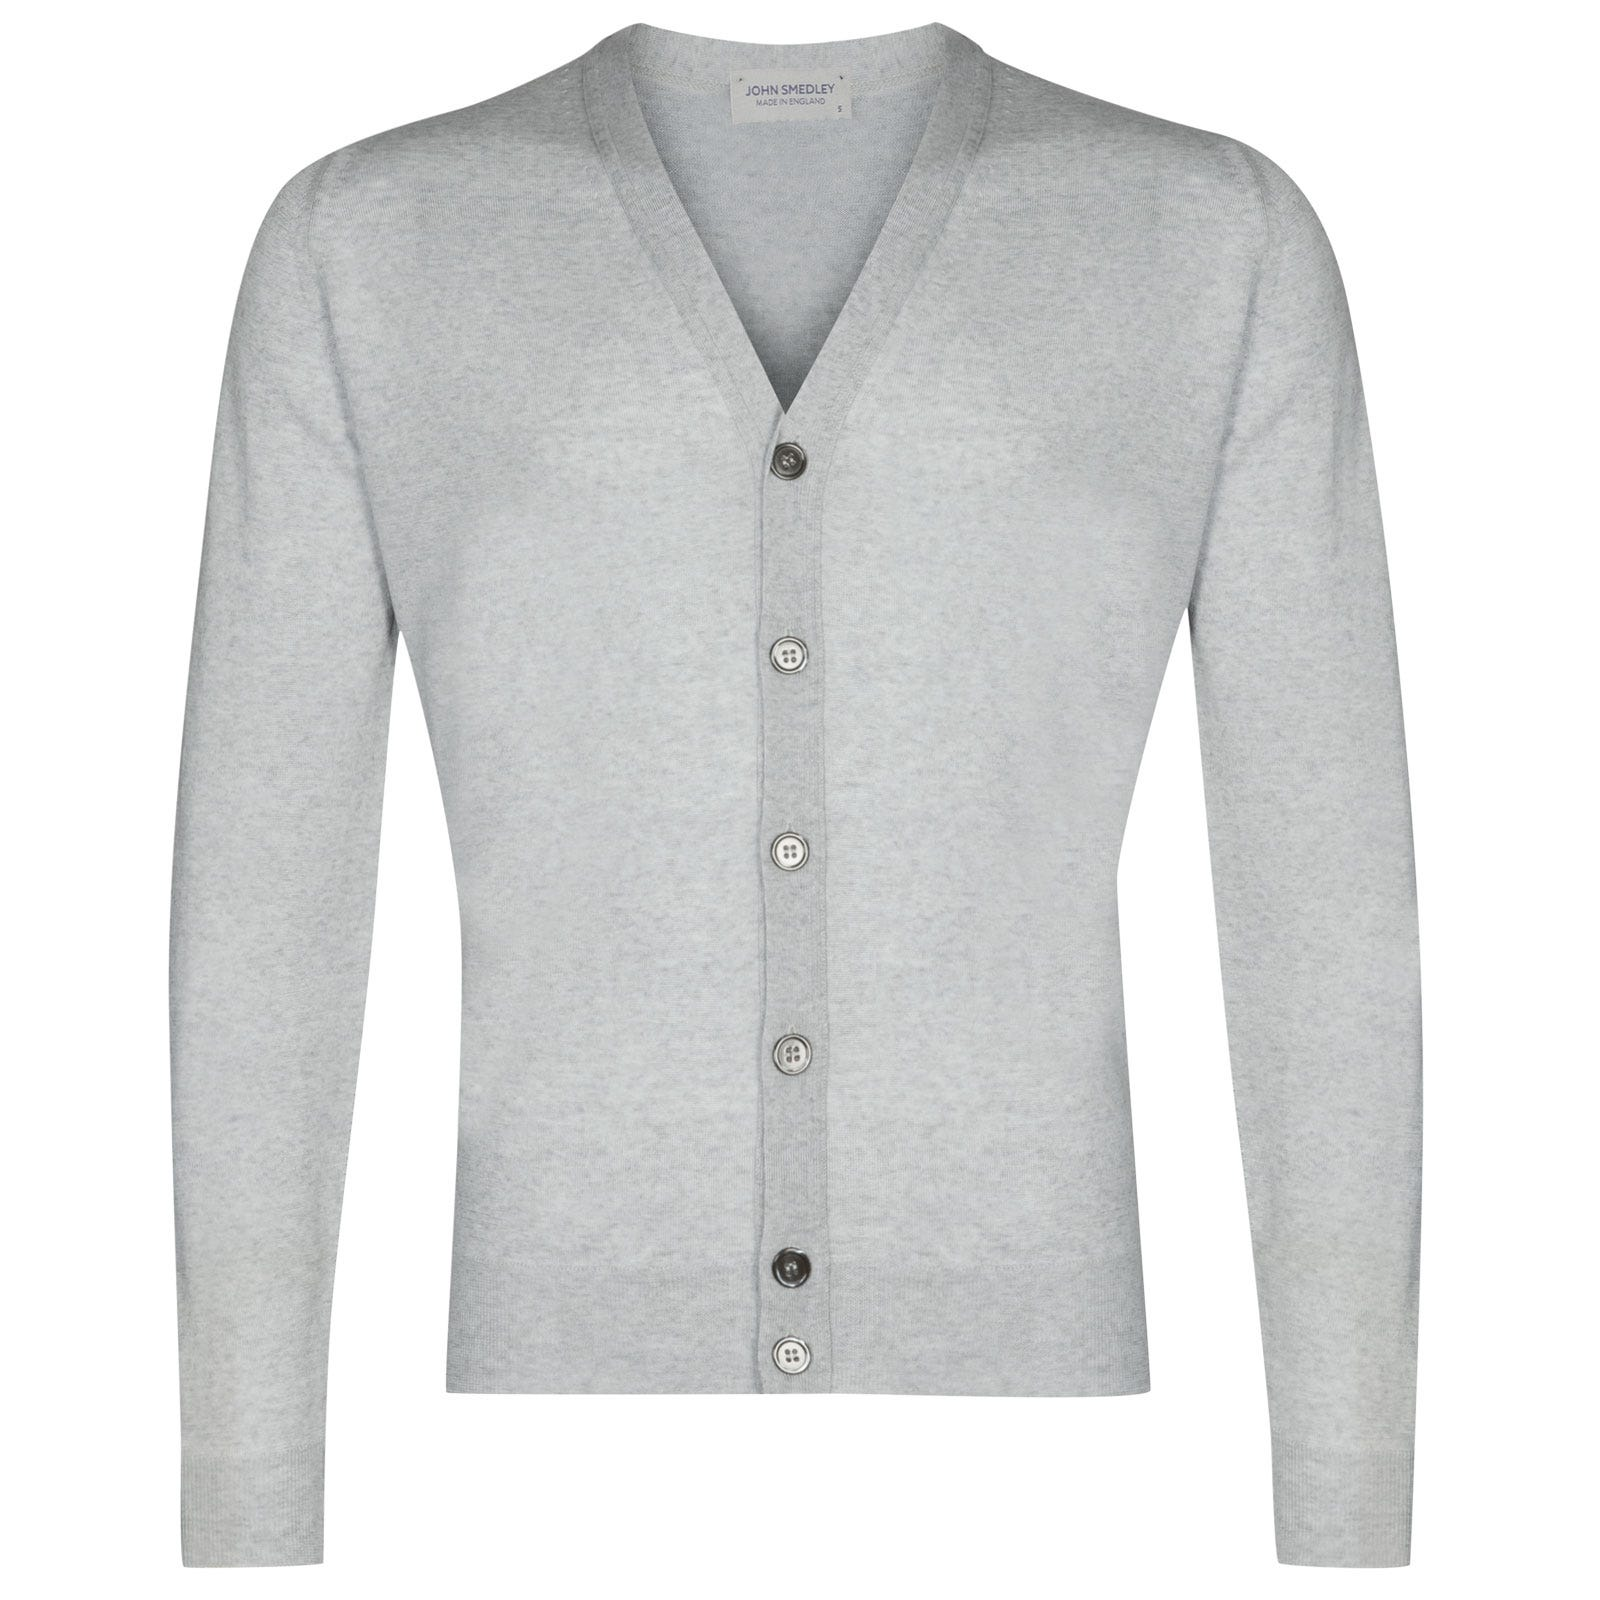 John Smedley naples Merino Wool Cardigan in Bardot Grey-S